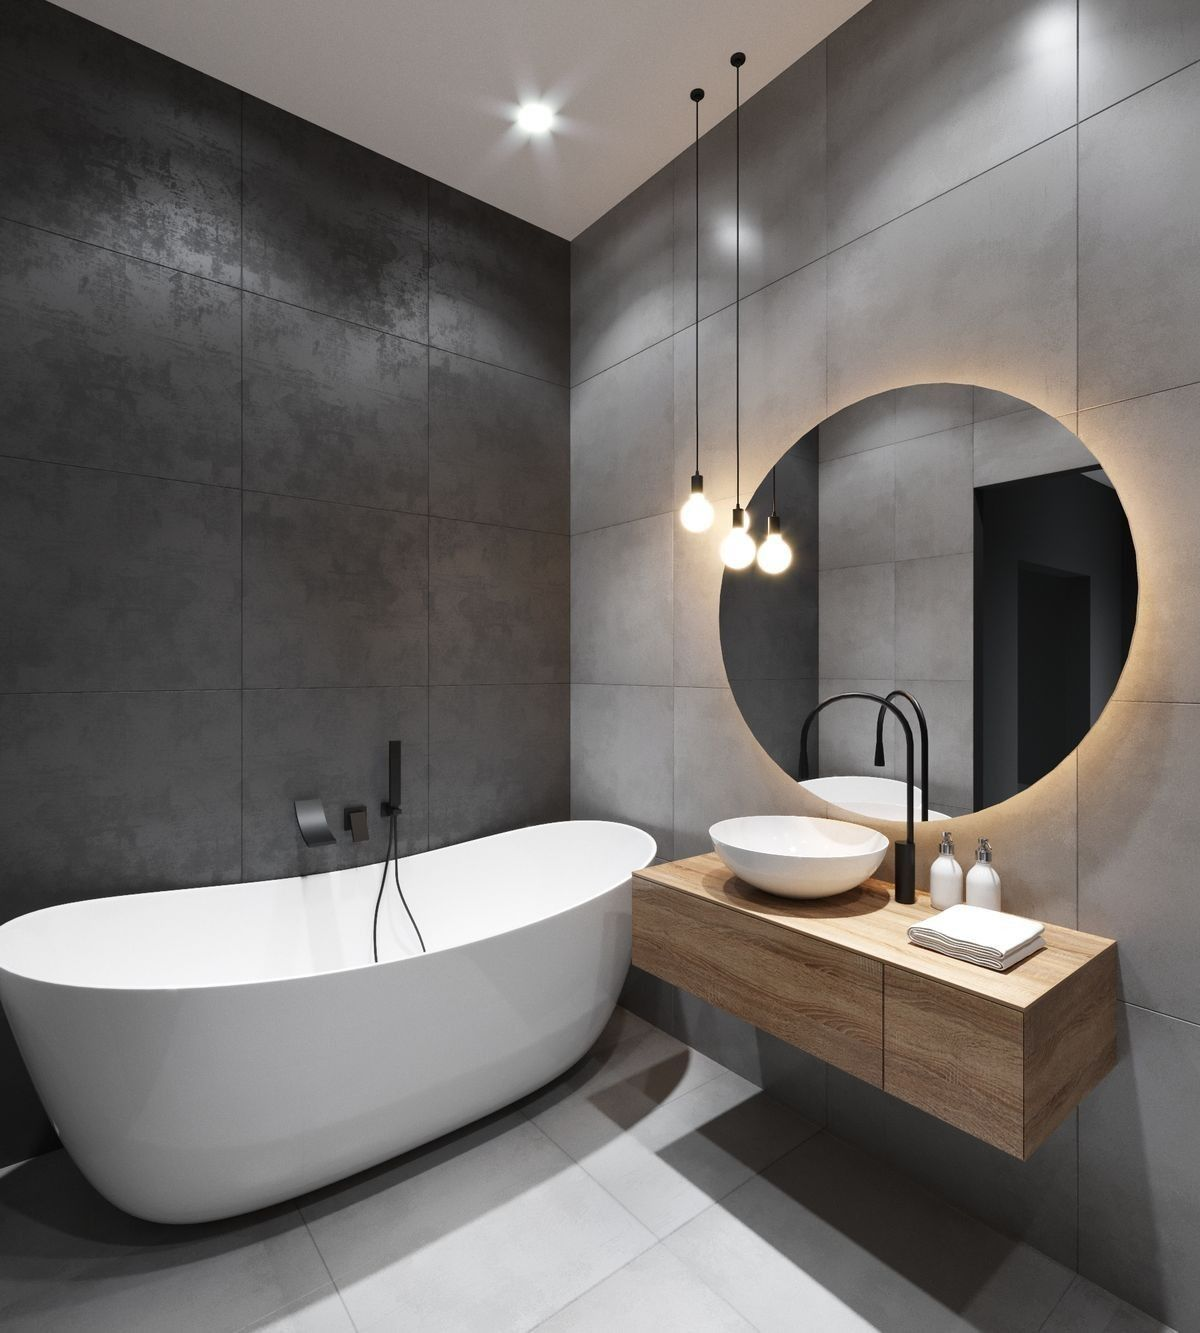 Large Bathroom Tiles Evoke A Sense Of Spaciousness And Calm And Work Very Well In Smaller Rooms Modern Bathroom Small Bathroom Makeover Modern Bathroom Design